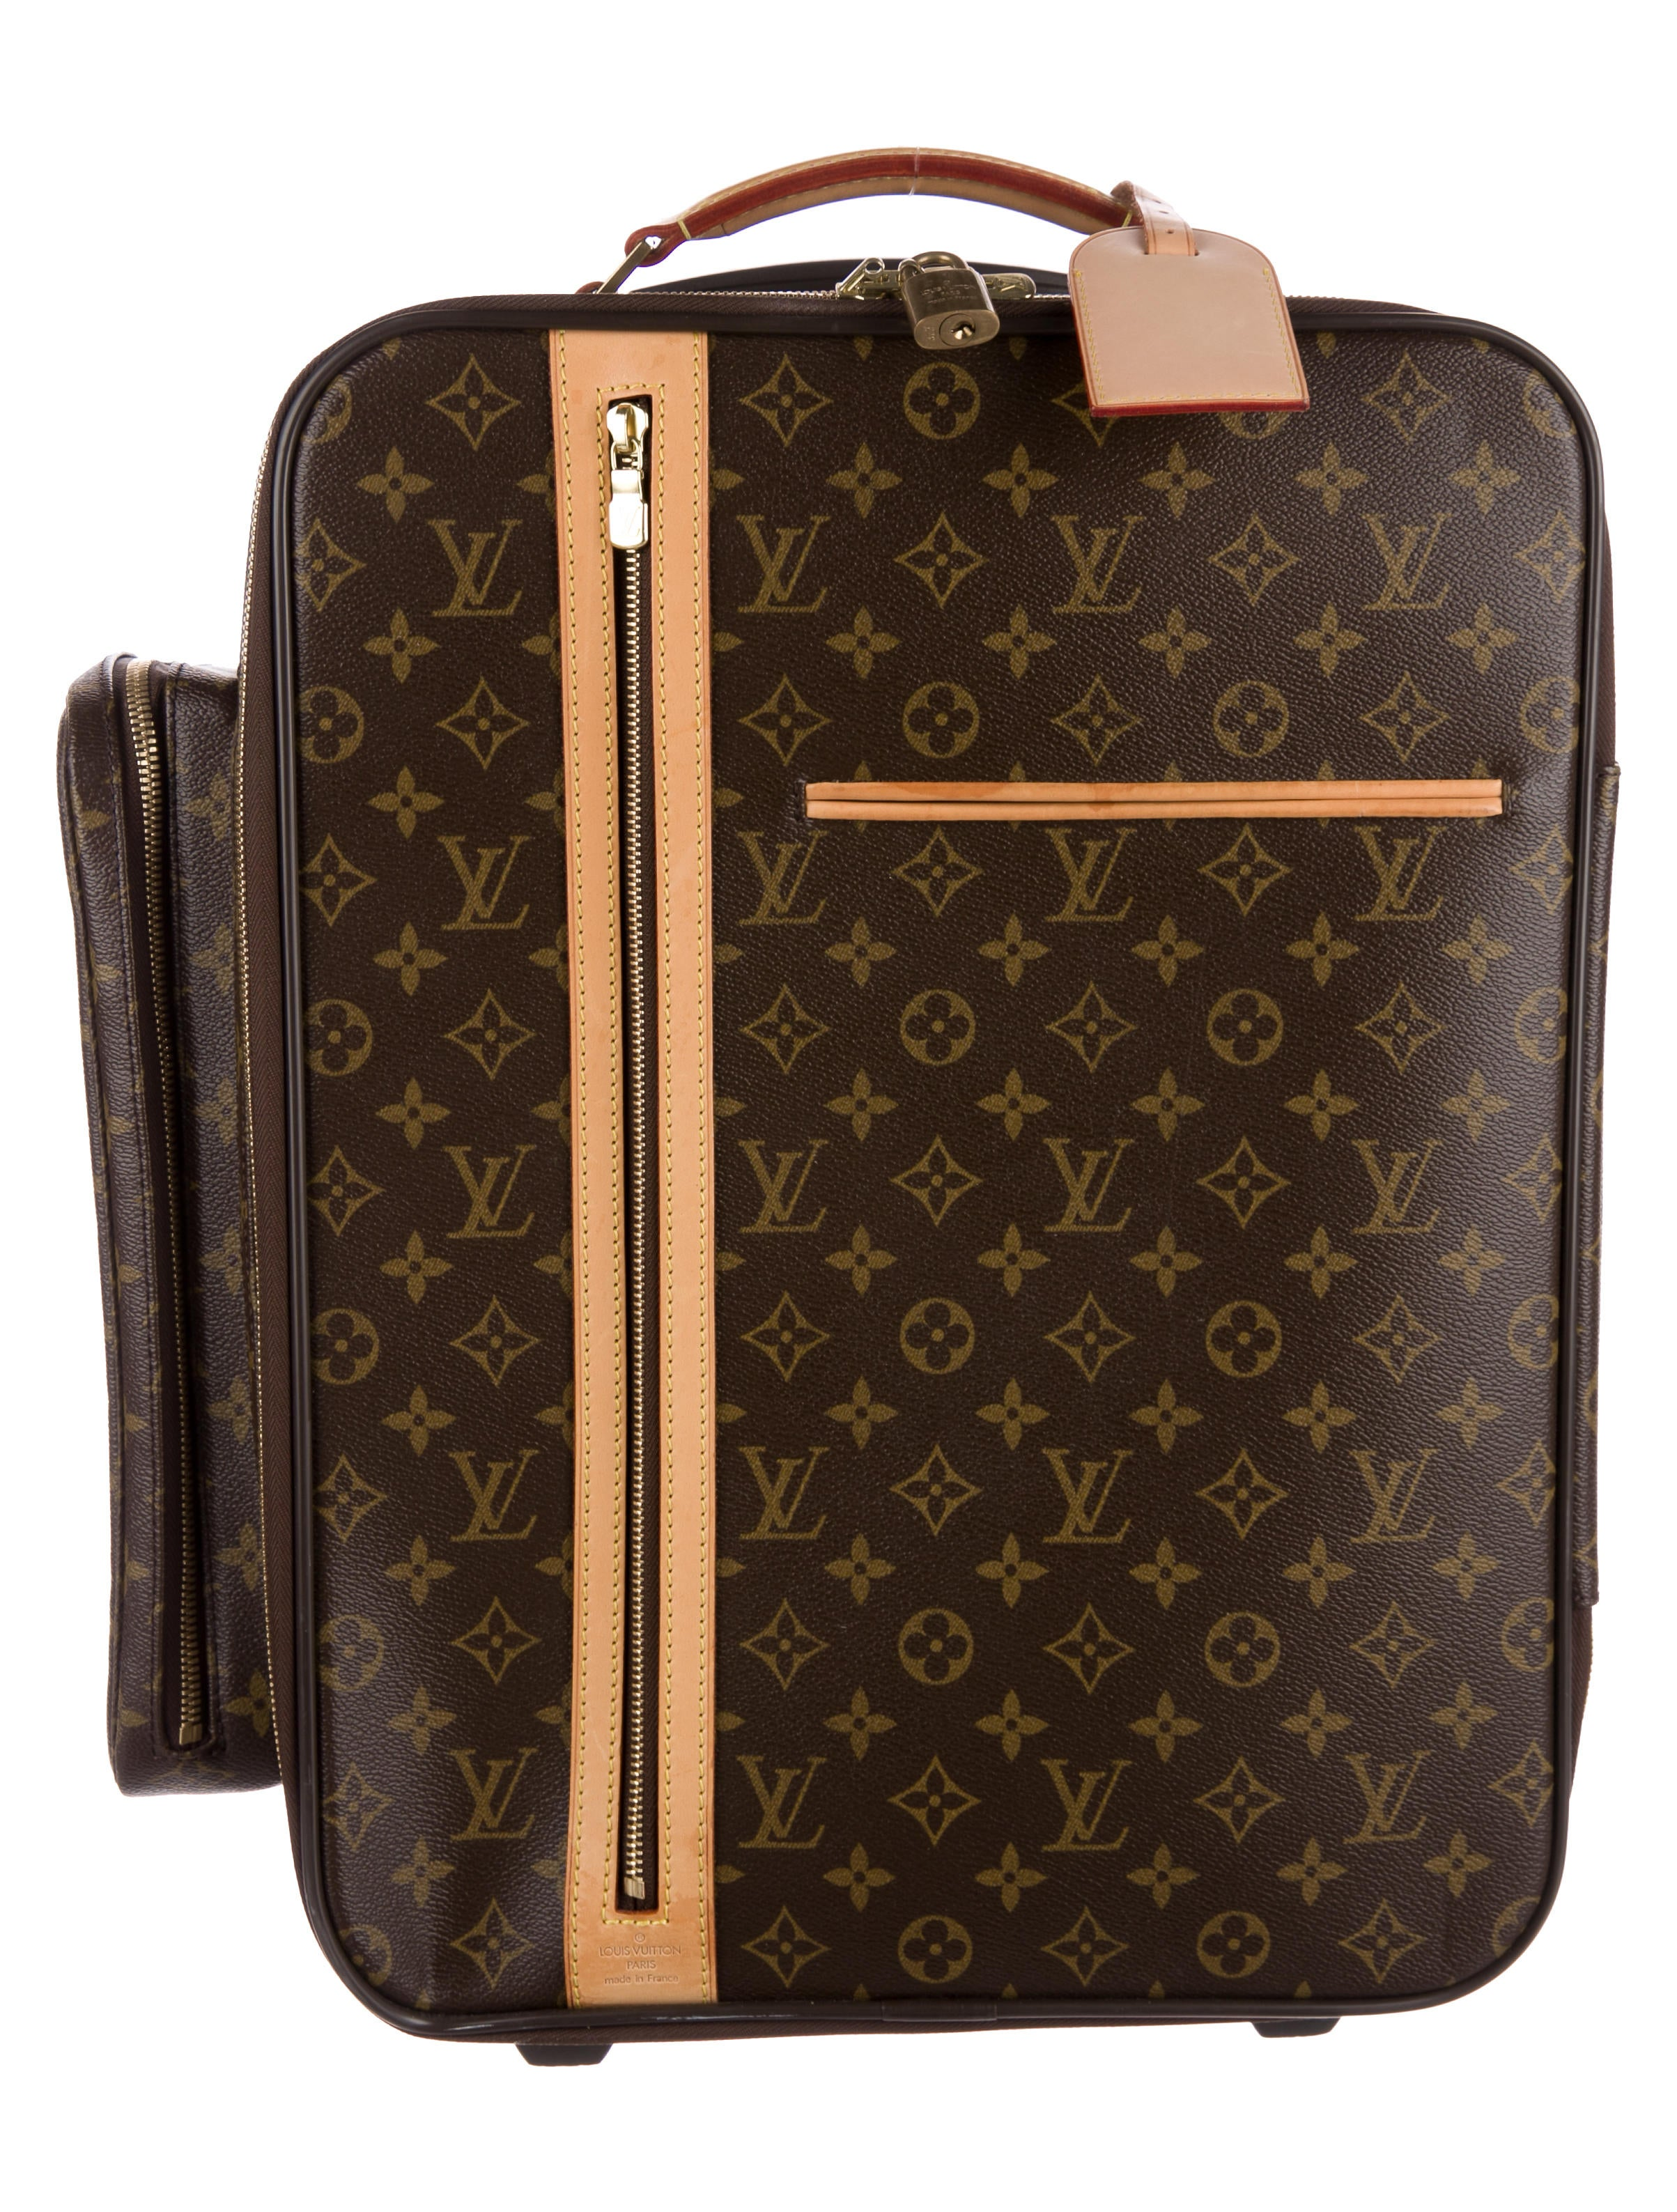 louis vuitton monogram bosphore trolley 45 luggage lou139138 the realreal. Black Bedroom Furniture Sets. Home Design Ideas